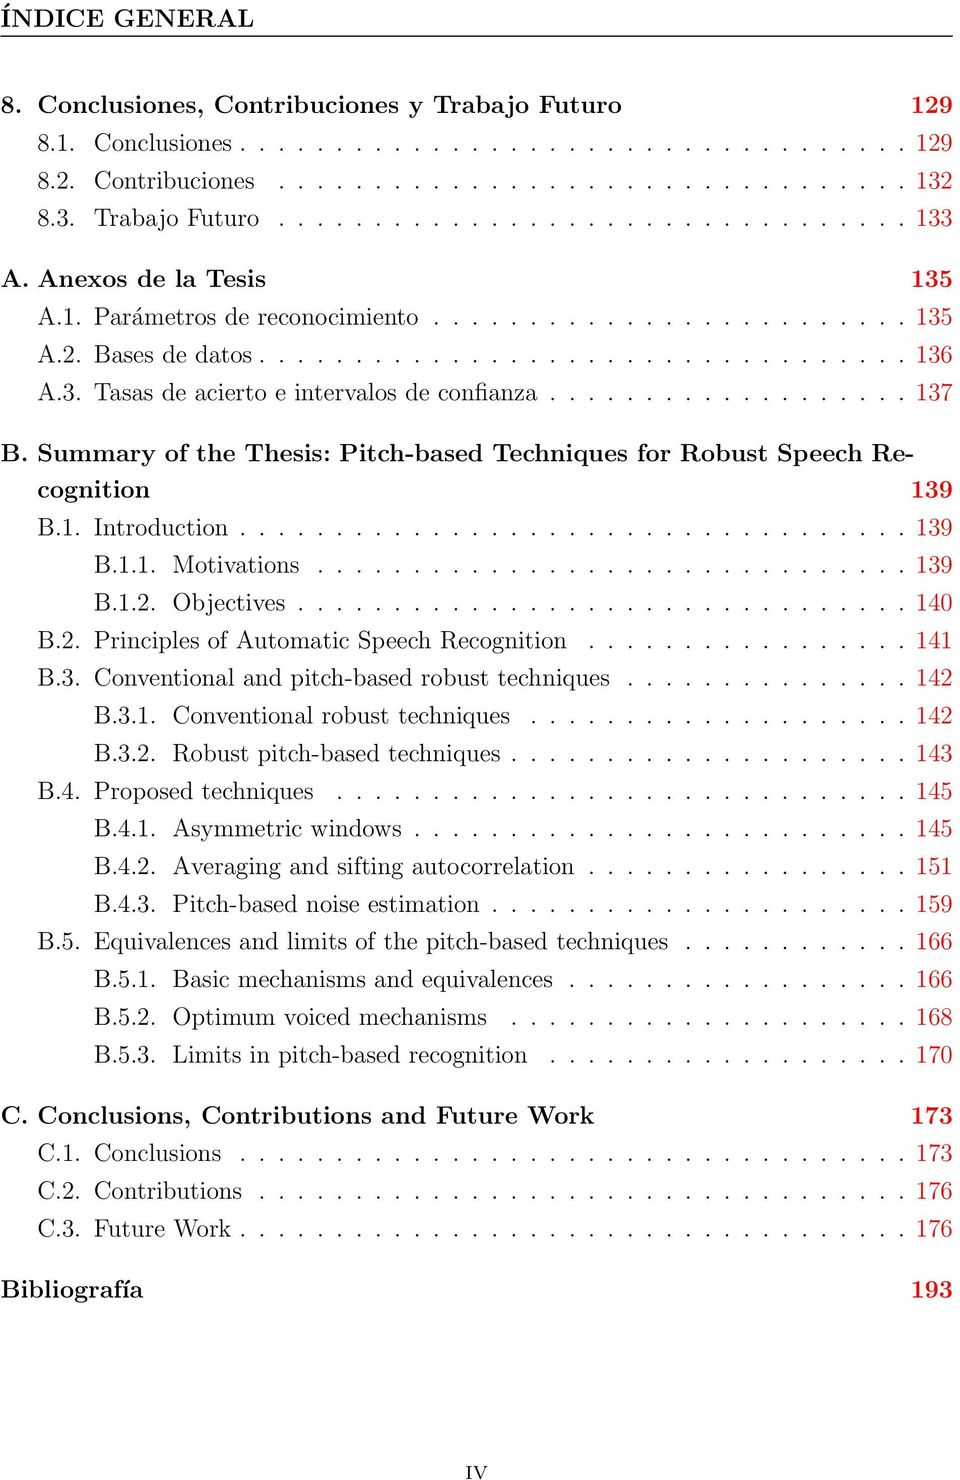 Summary of the Thesis: Pitch-based Techniques for Robust Speech Recognition 139 B.1. Introduction................................... 139 B.1.1. Motivations............................... 139 B.1.2.